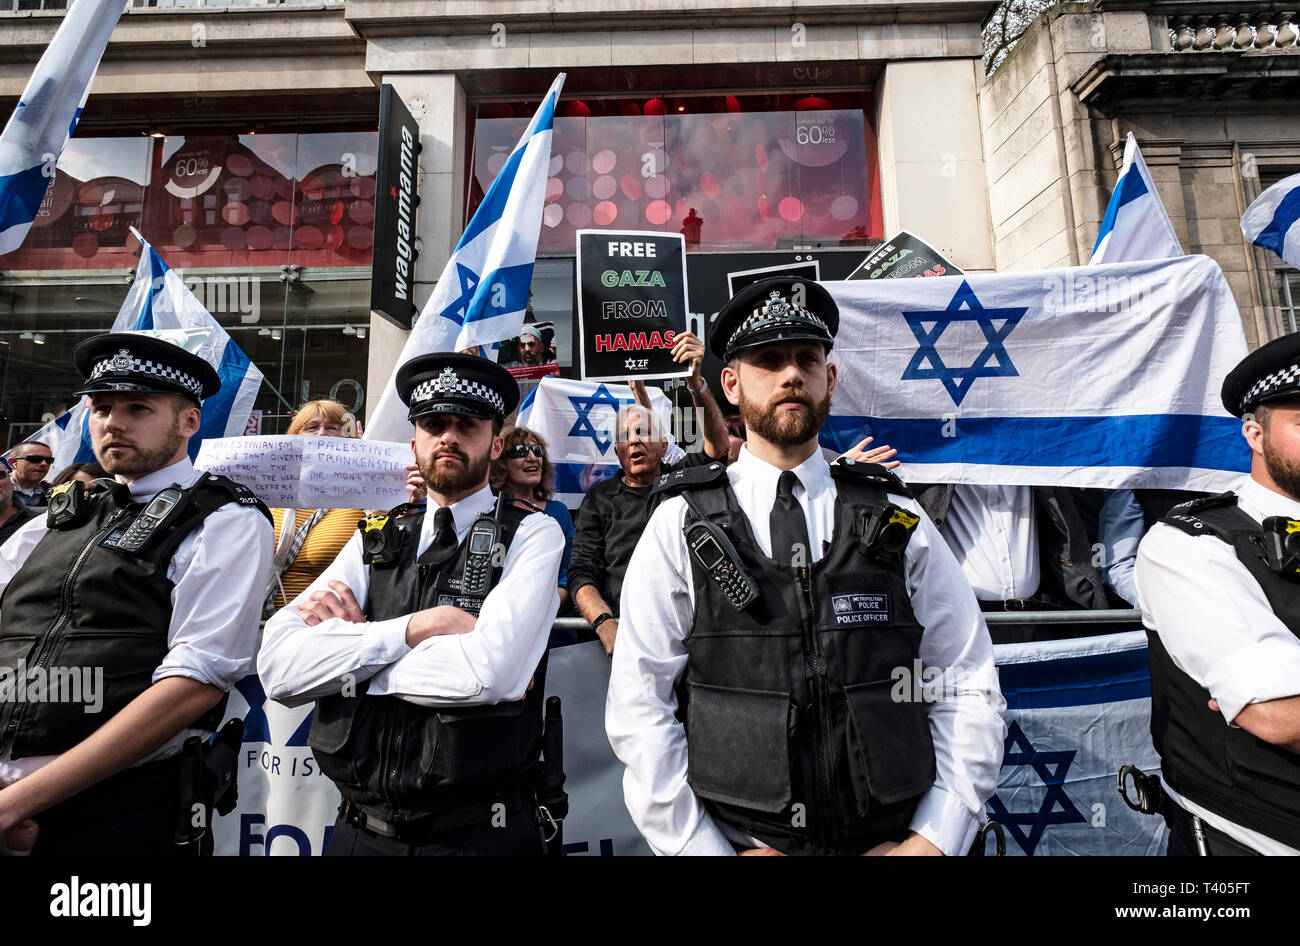 Israeli group being protected behind barrier outside the Israeli Embassy during a rally by Palestinians in London. Exist,Resist, Return. A global call for solidarity on the 1st anniversary of the start of the Great Return March. - Stock Image